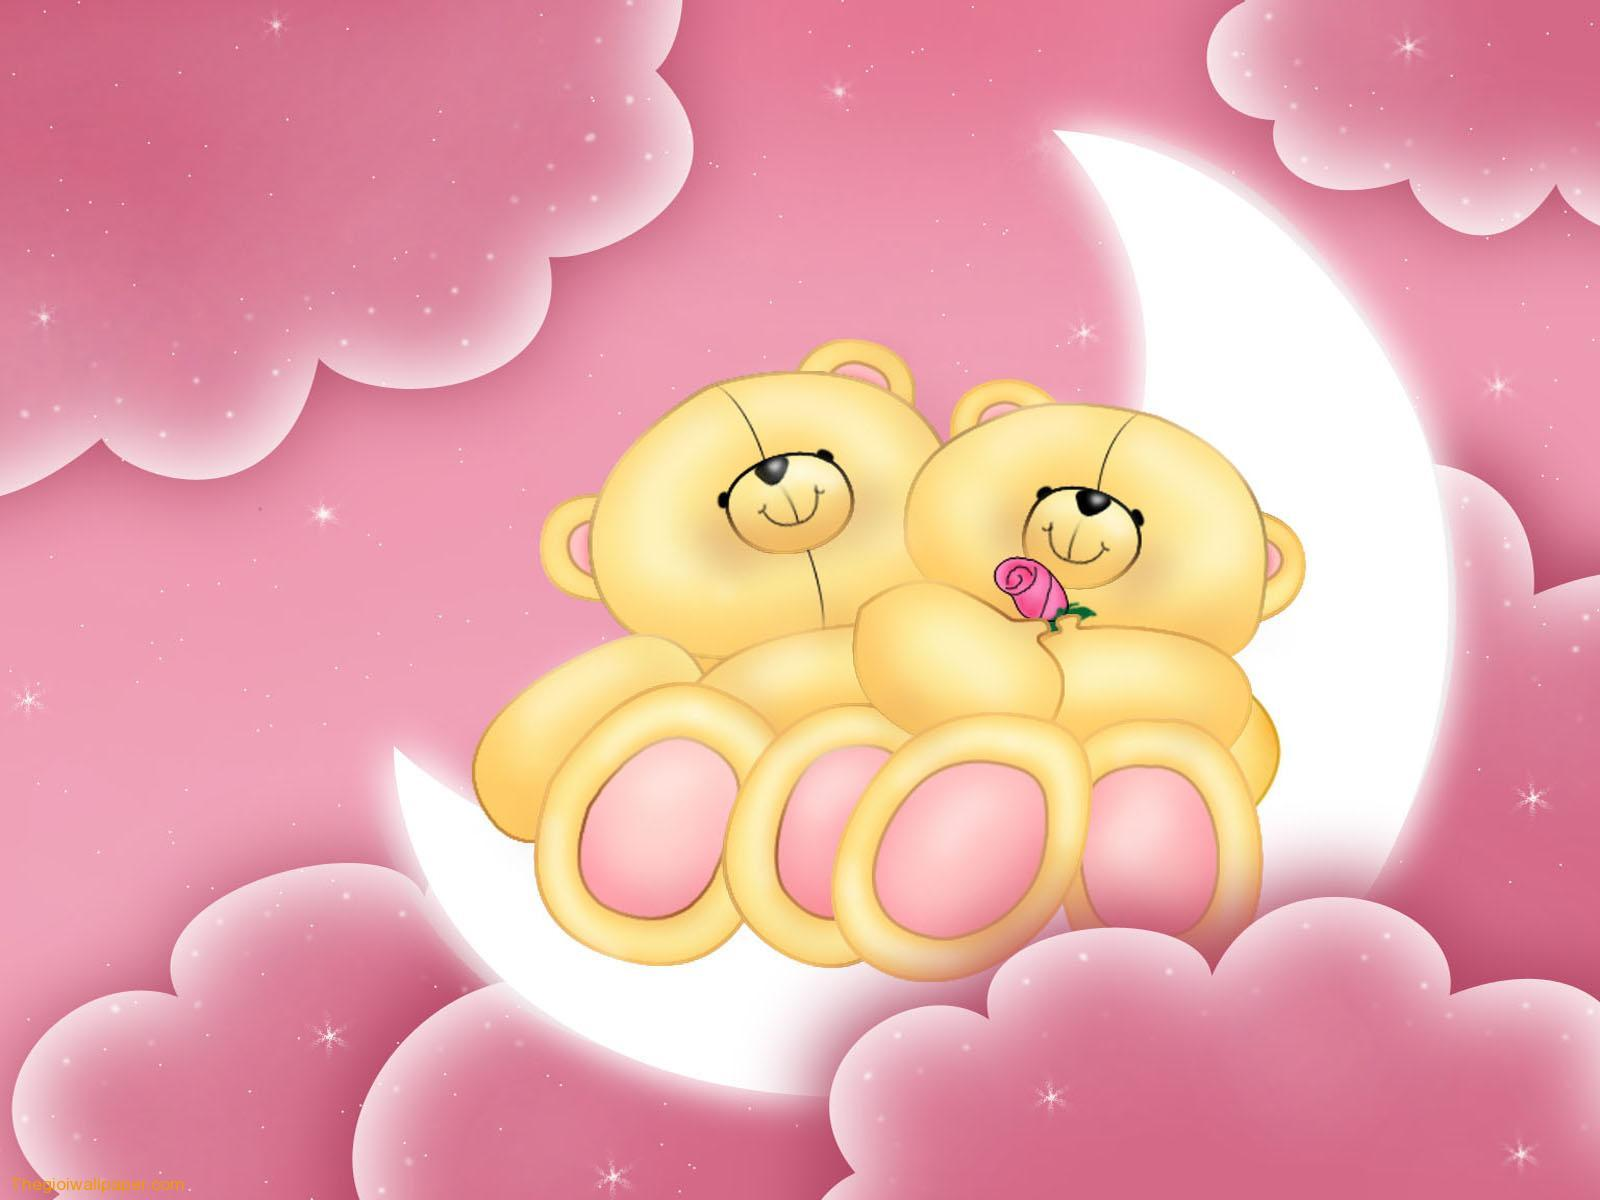 Cute Desktop Backgrounds Wallpaper Cave